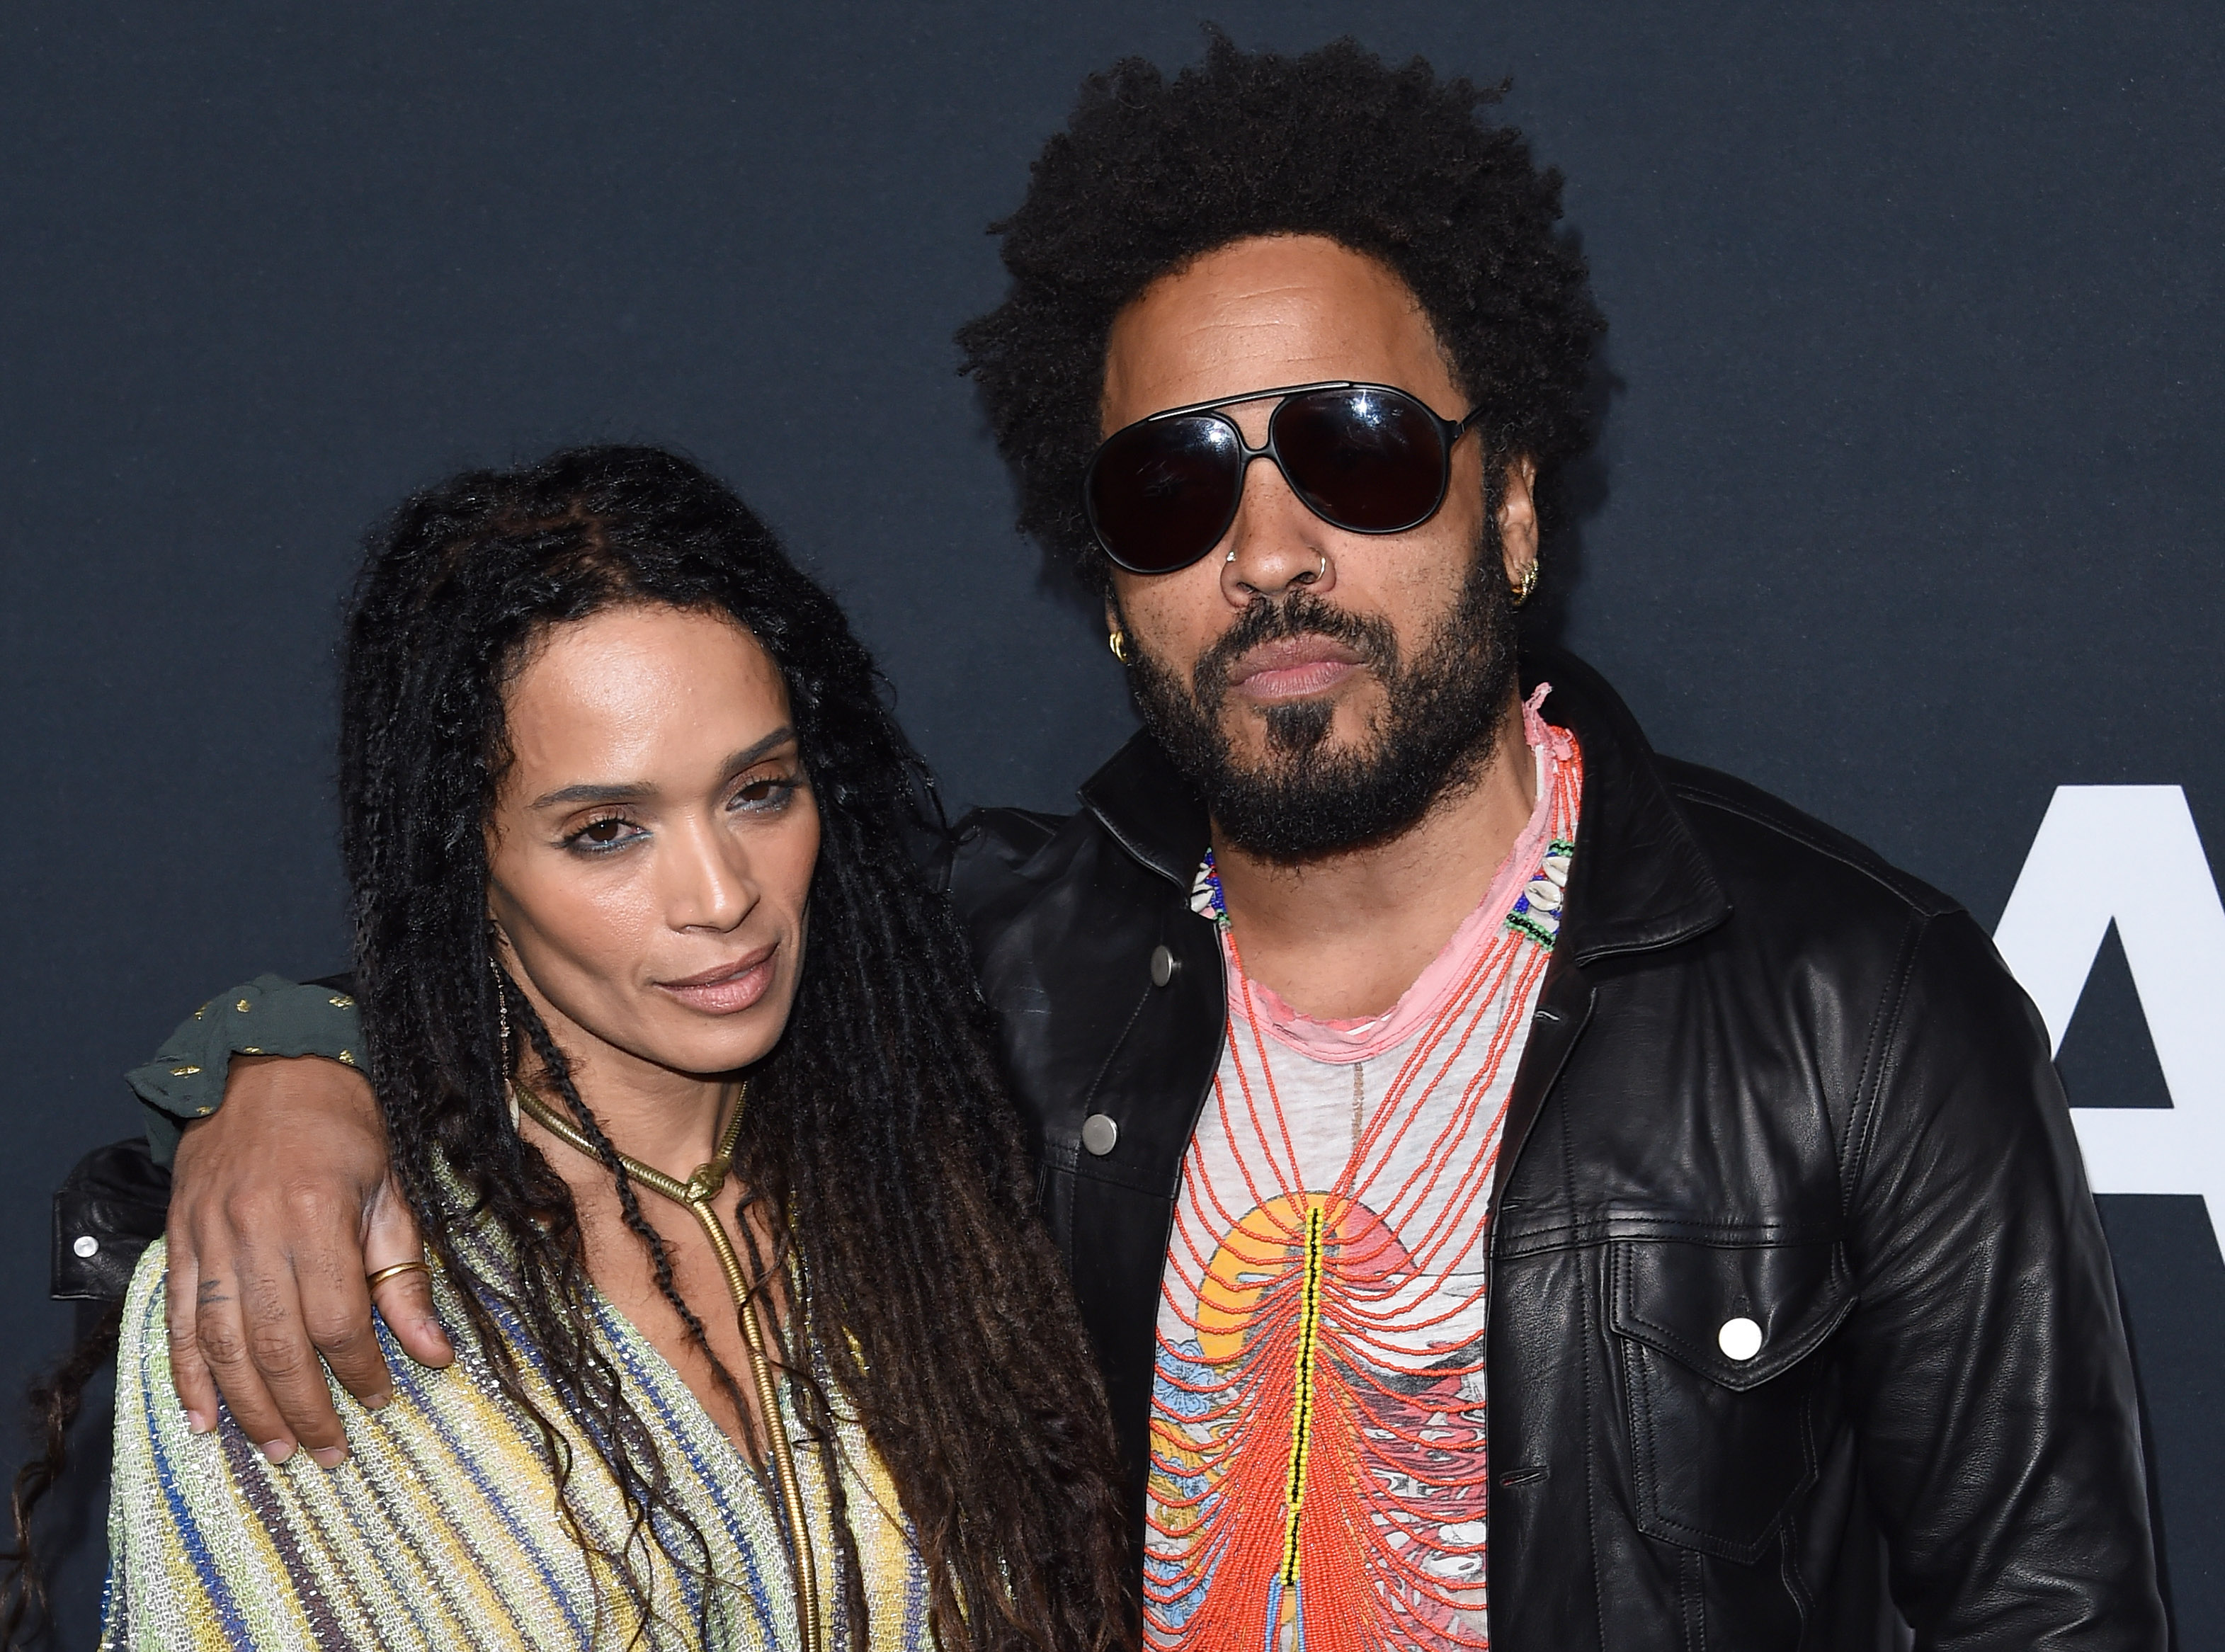 LOS ANGELES, CA - FEBRUARY 10:  Musician Lenny Kravitz (R) and actress Lisa Bonet arrive at SAINT LAURENT At The Palladium at Hollywood Palladium on February 10, 2016 in Los Angeles, California.  (Photo by Axelle/Bauer-Griffin/FilmMagic)